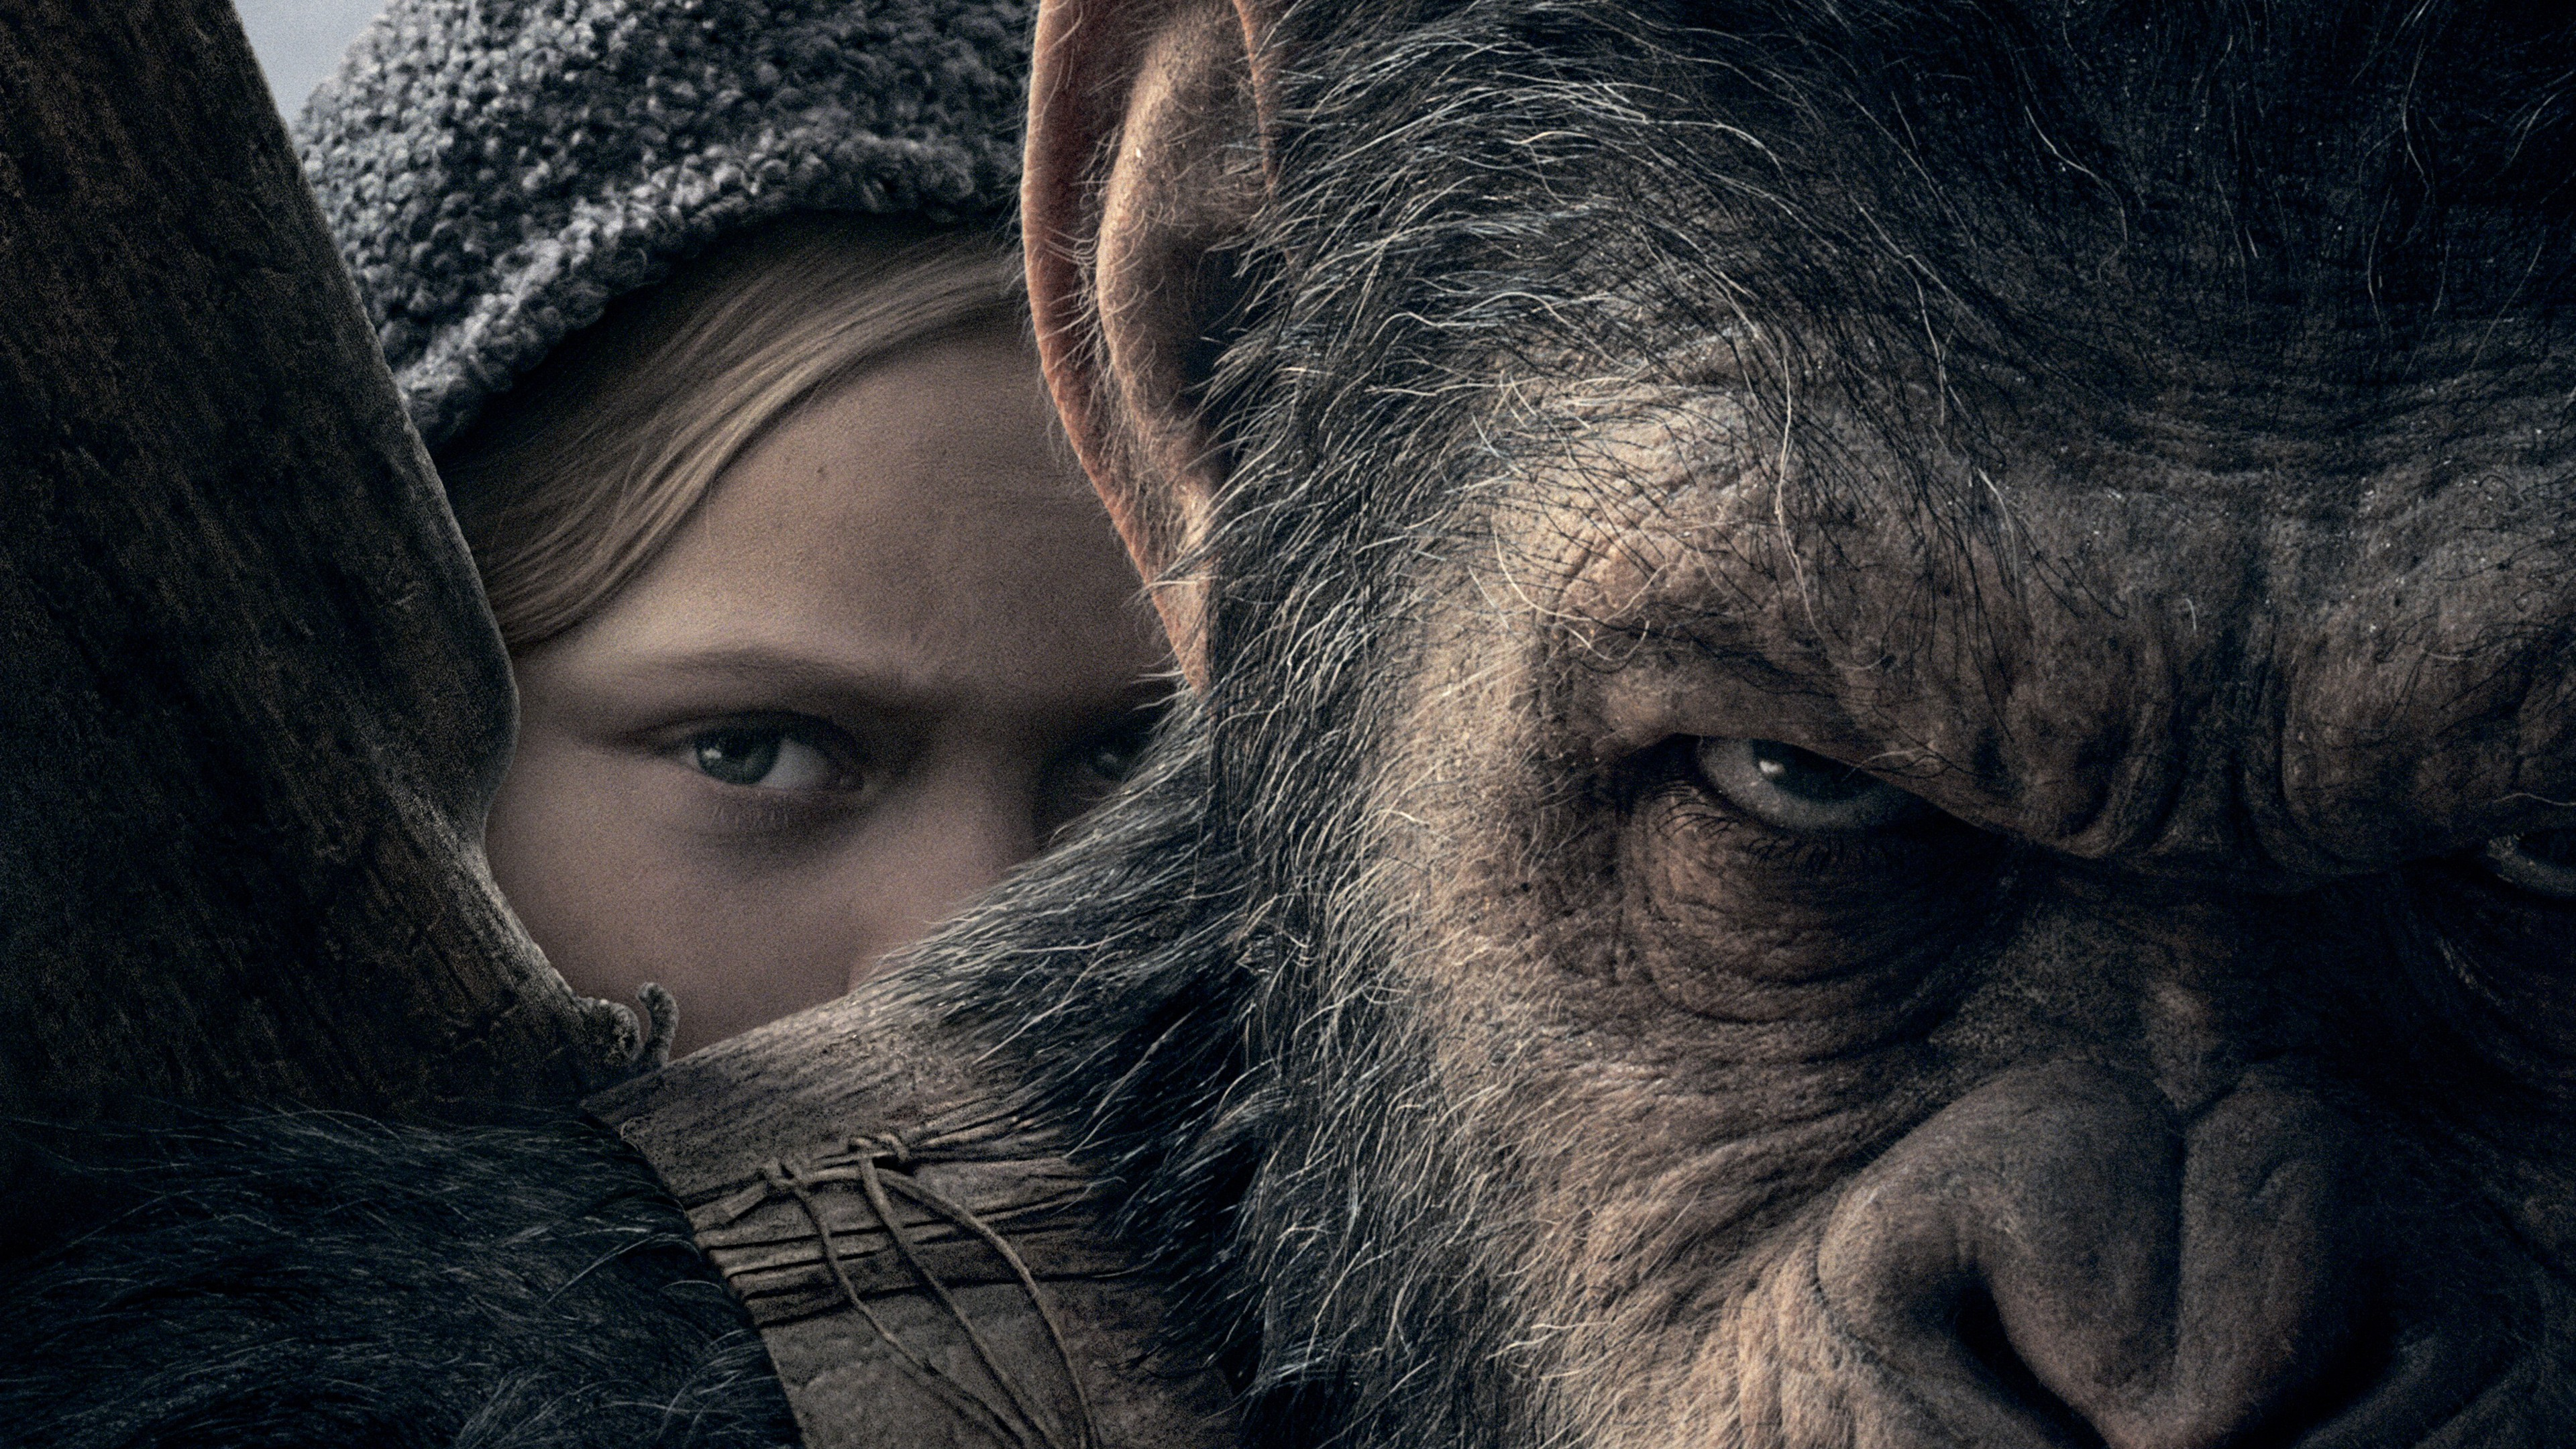 Roxy Wallpaper Iphone Amiah Miller War For The Planet Of The Apes 4k Wallpapers